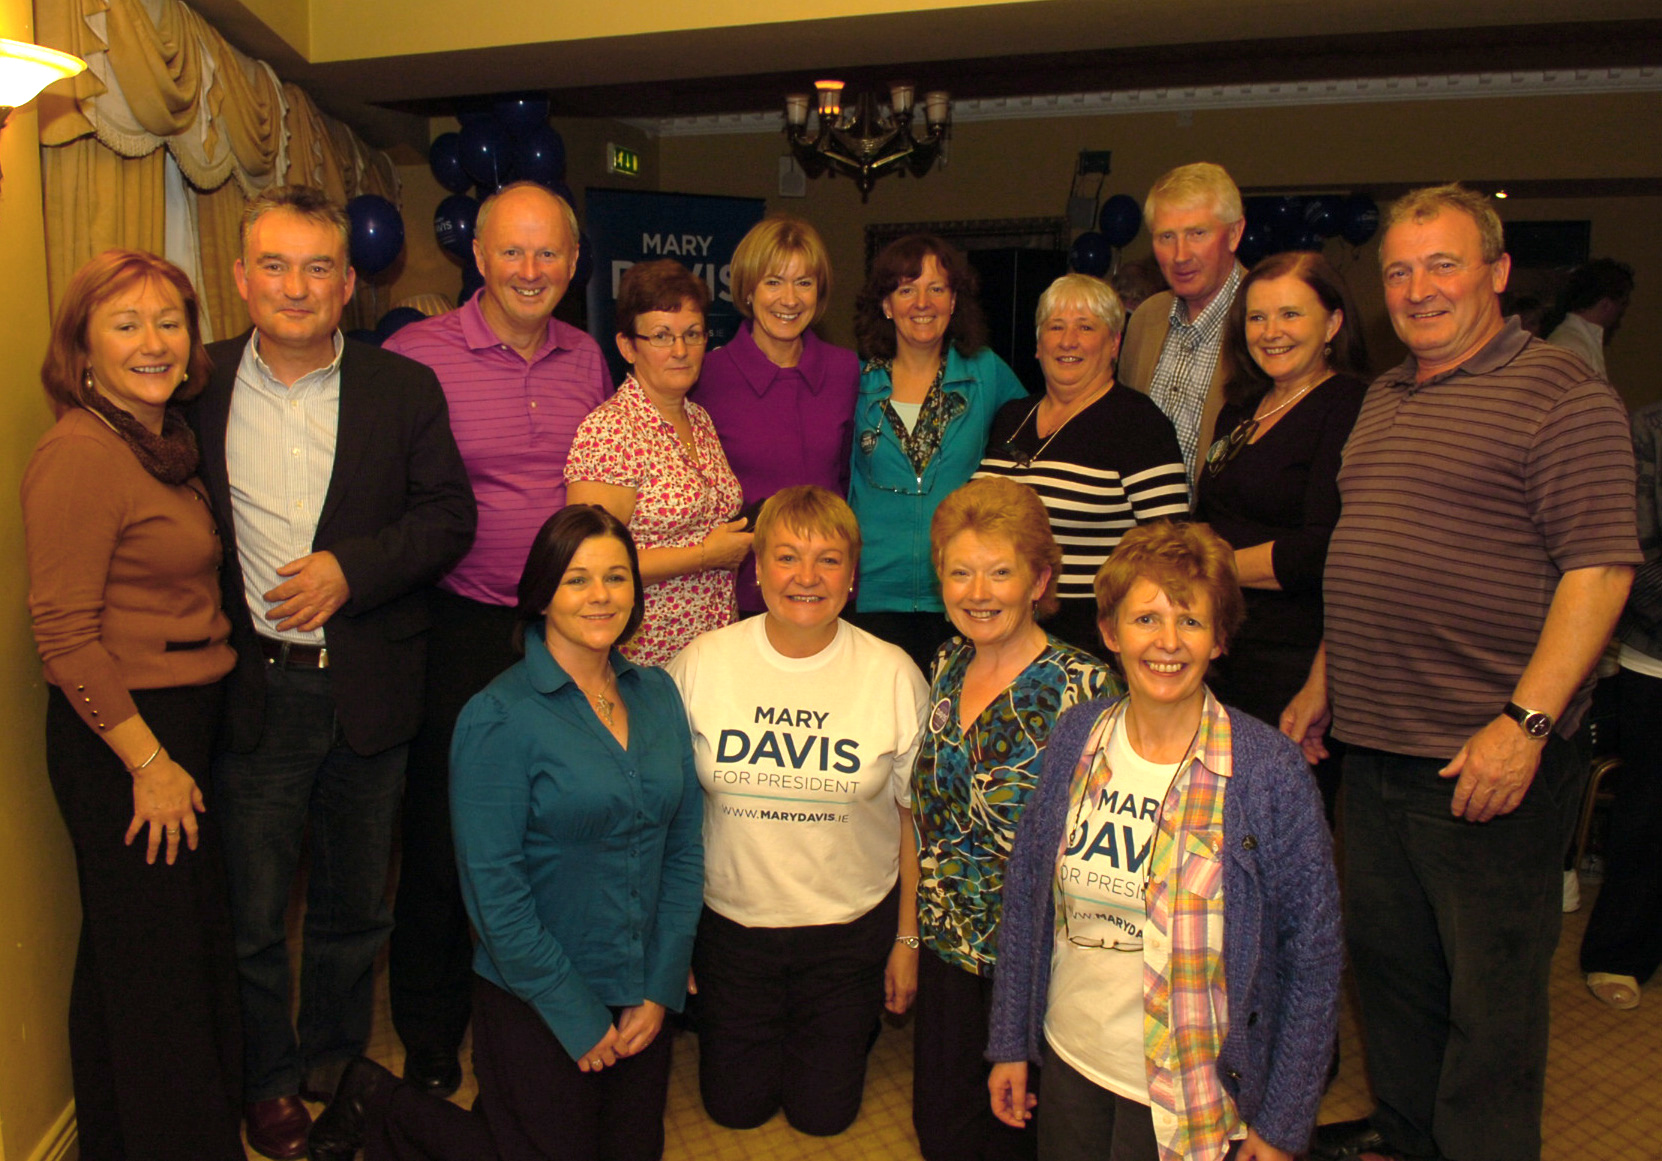 Mary_and_Kiltimagh_supporters_17_.jpg